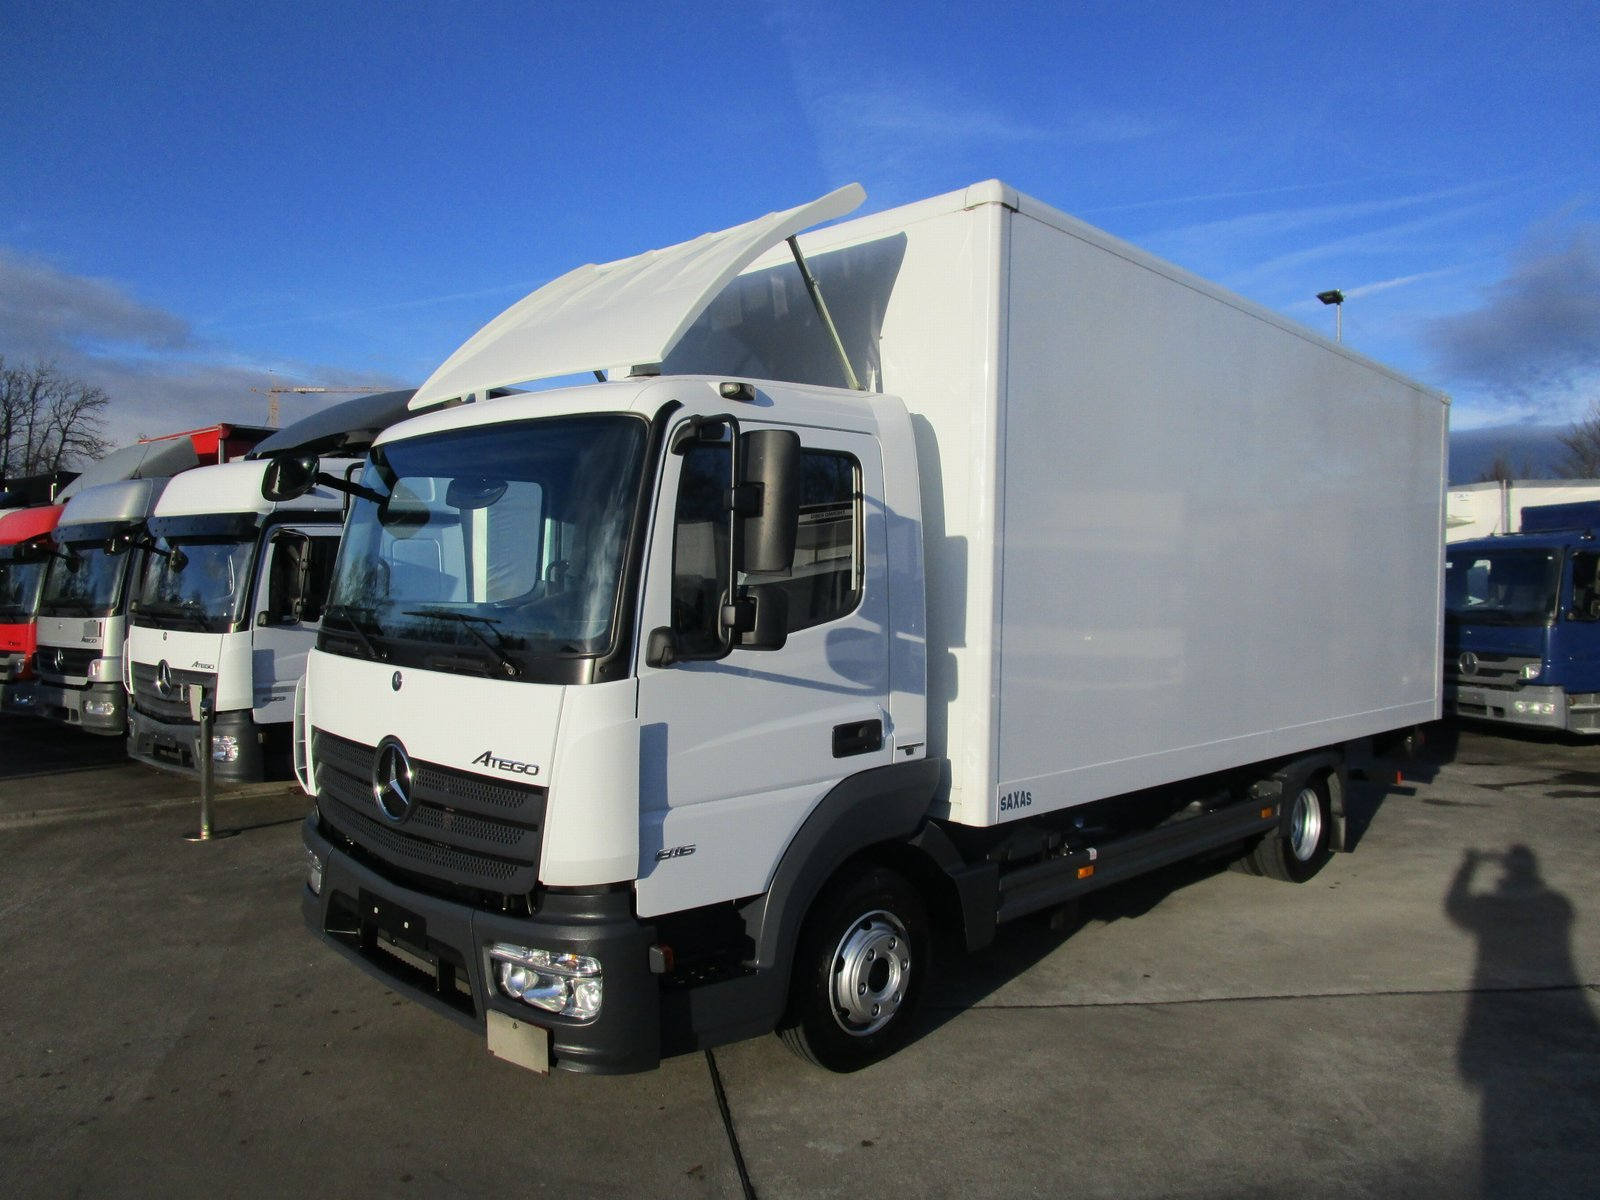 ATEGO IV 816 L Koffer 6,10 m LBW 1 to. AHK